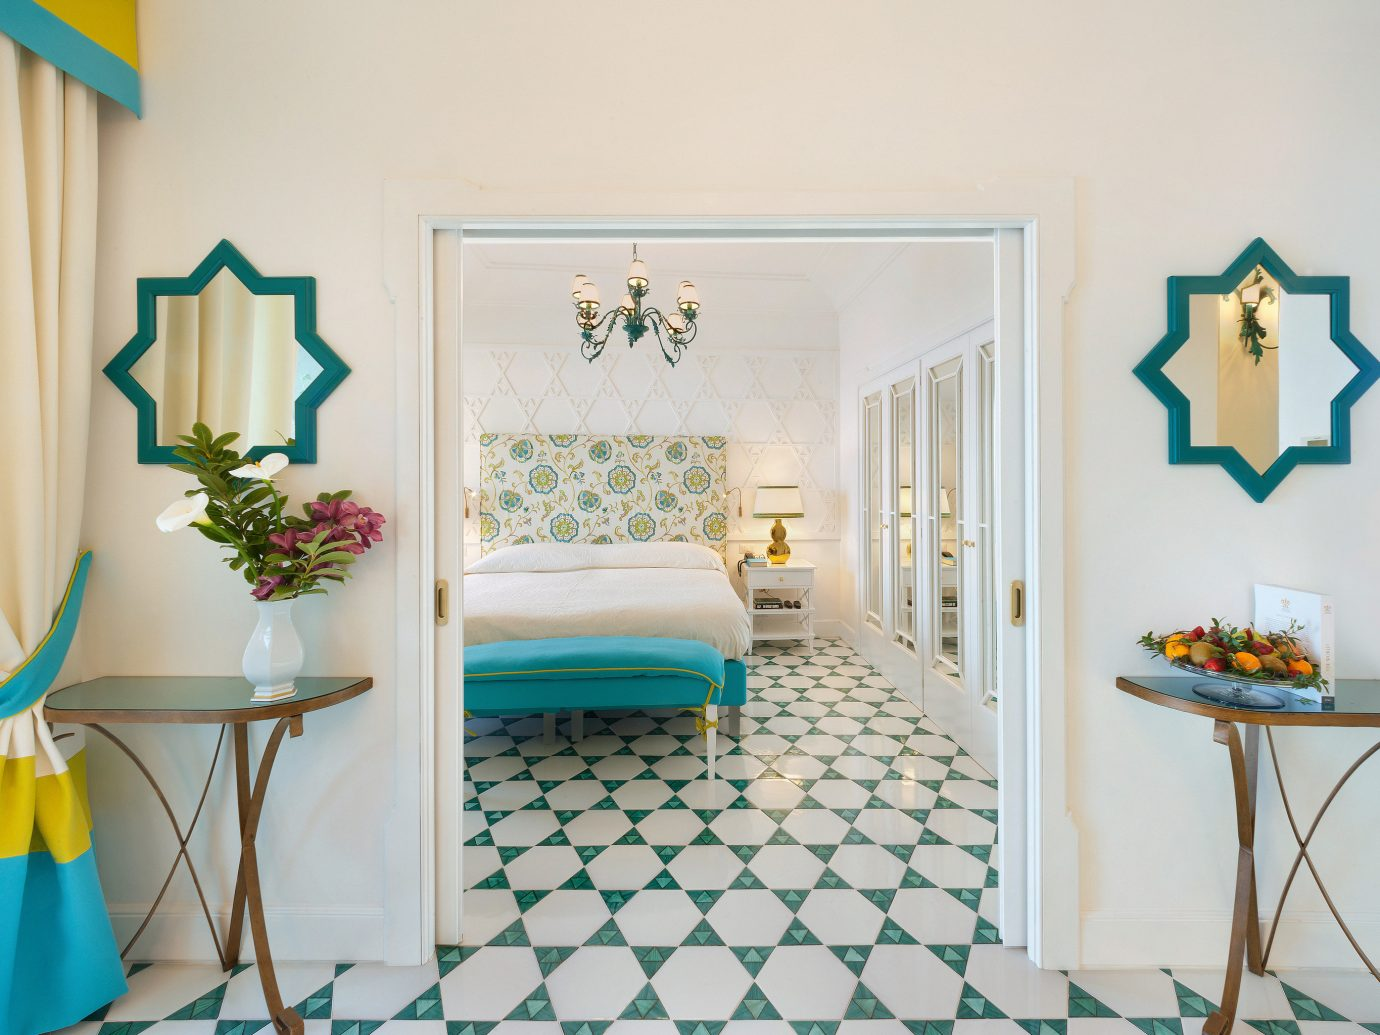 Bedroom at Il San Pietro di Positano